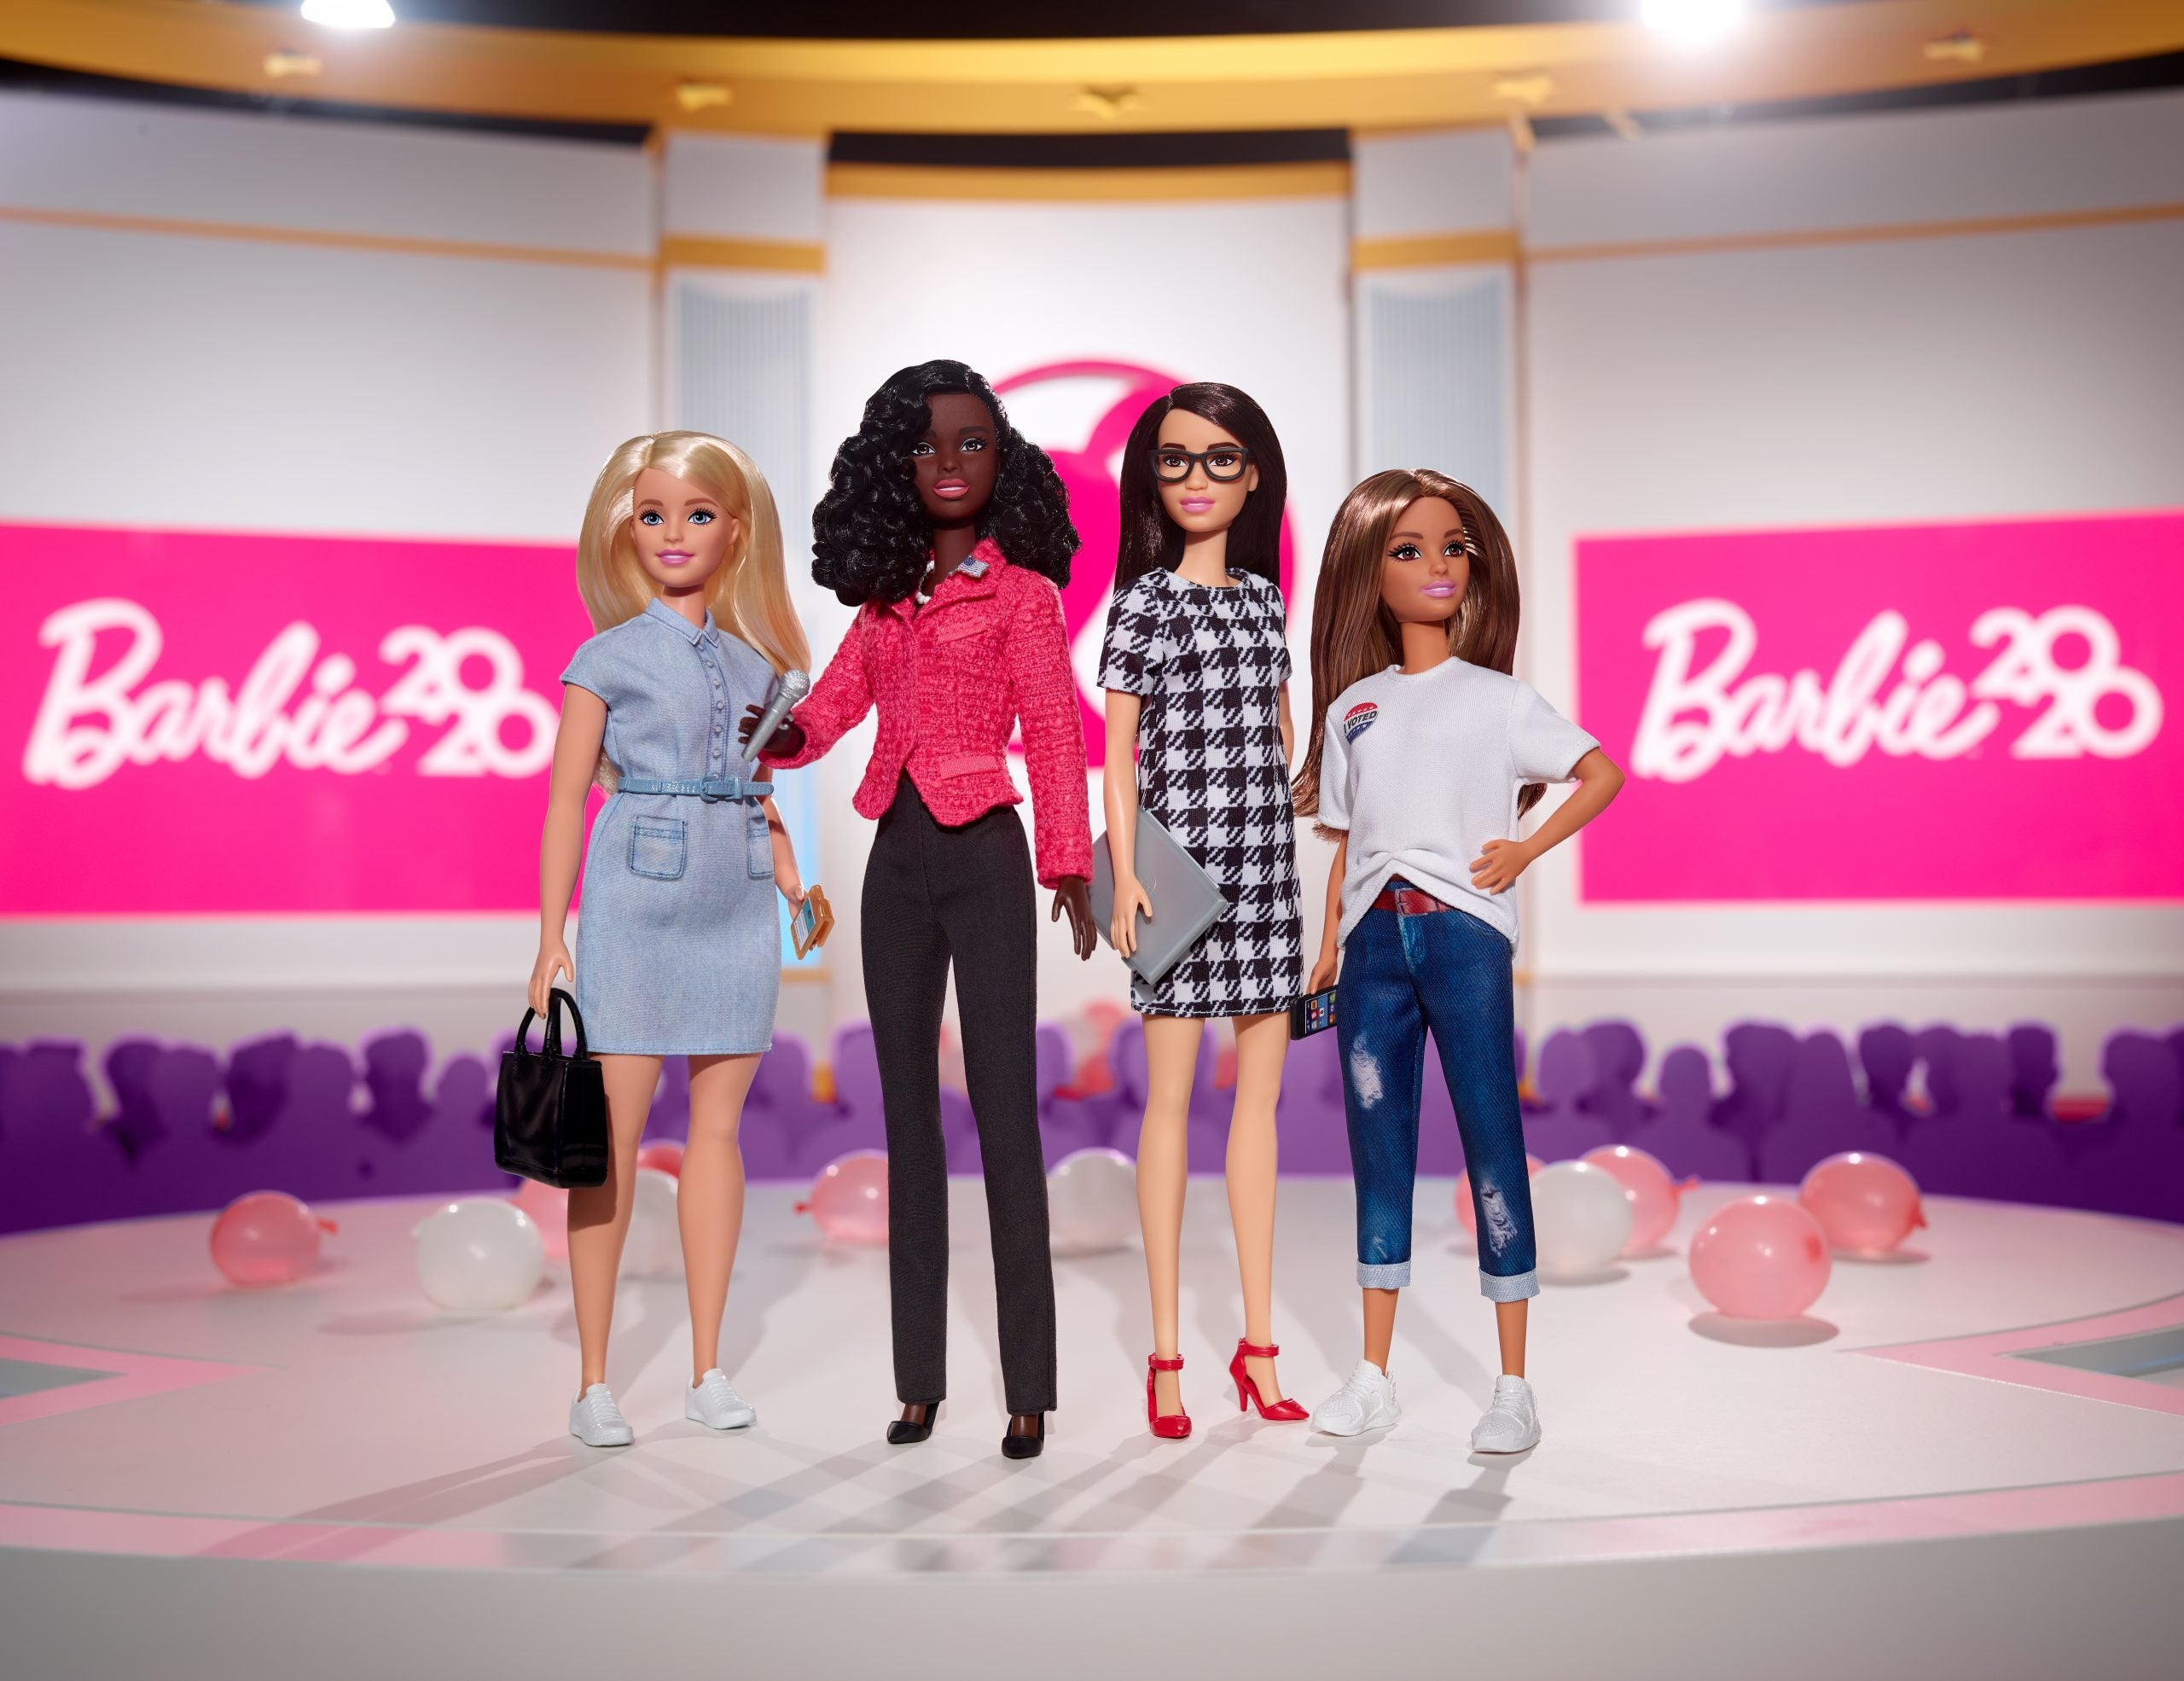 Black Barbie president poses with campaign staff and voter